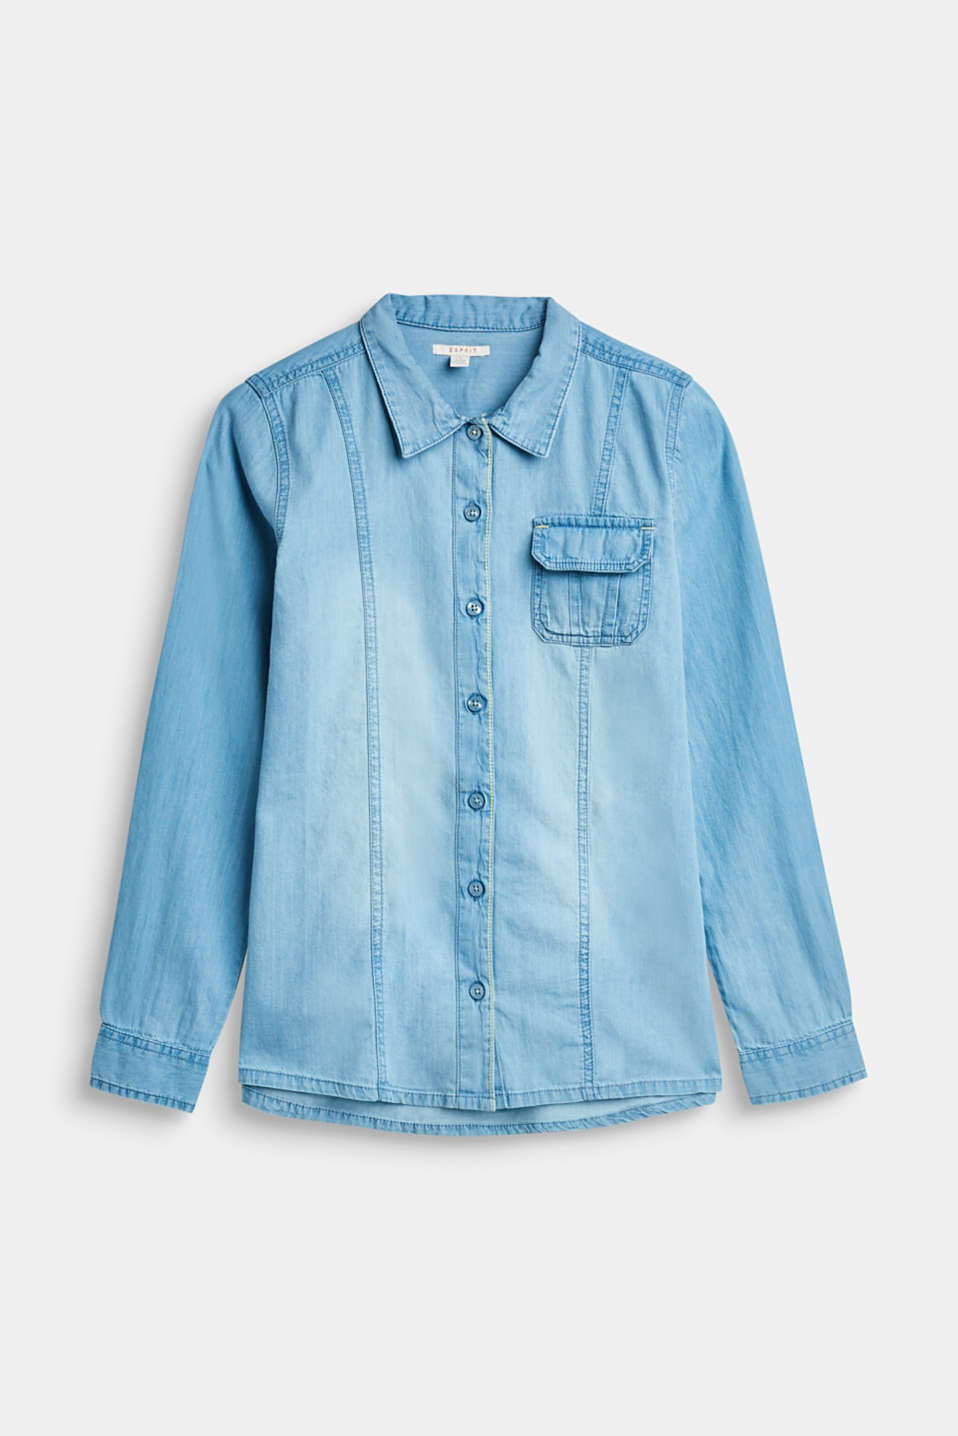 Esprit - Garment-washed denim shirt, 100% cotton